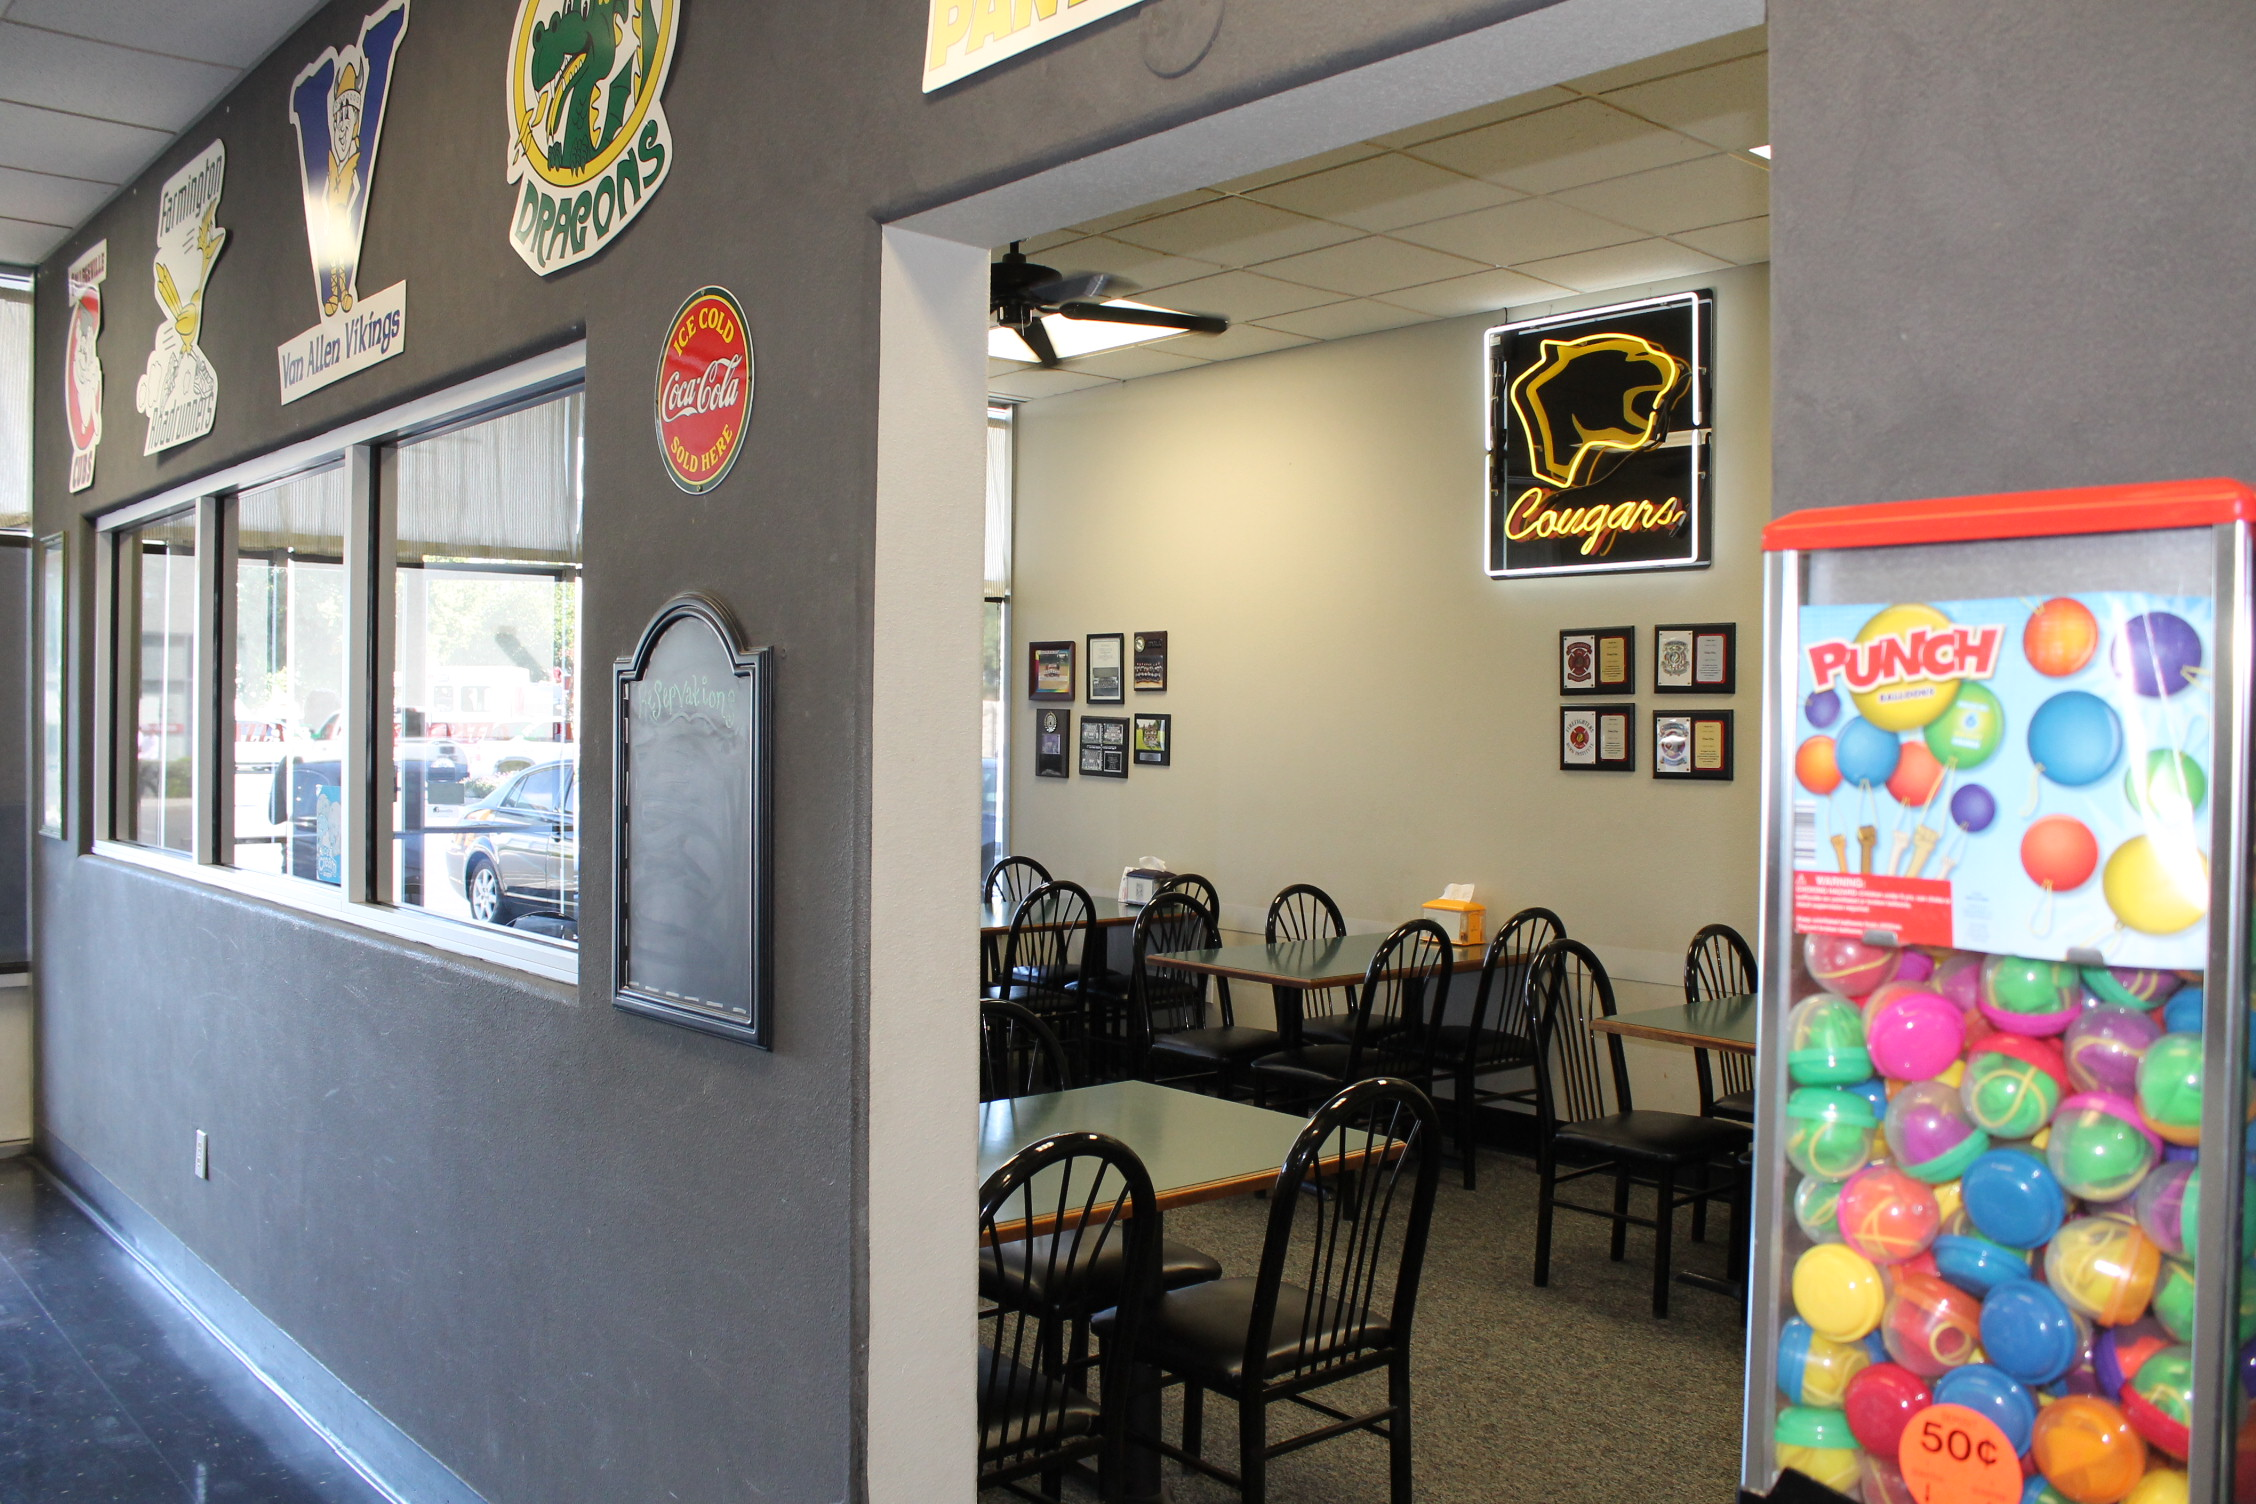 Pizza Plus in Escalon has a party room